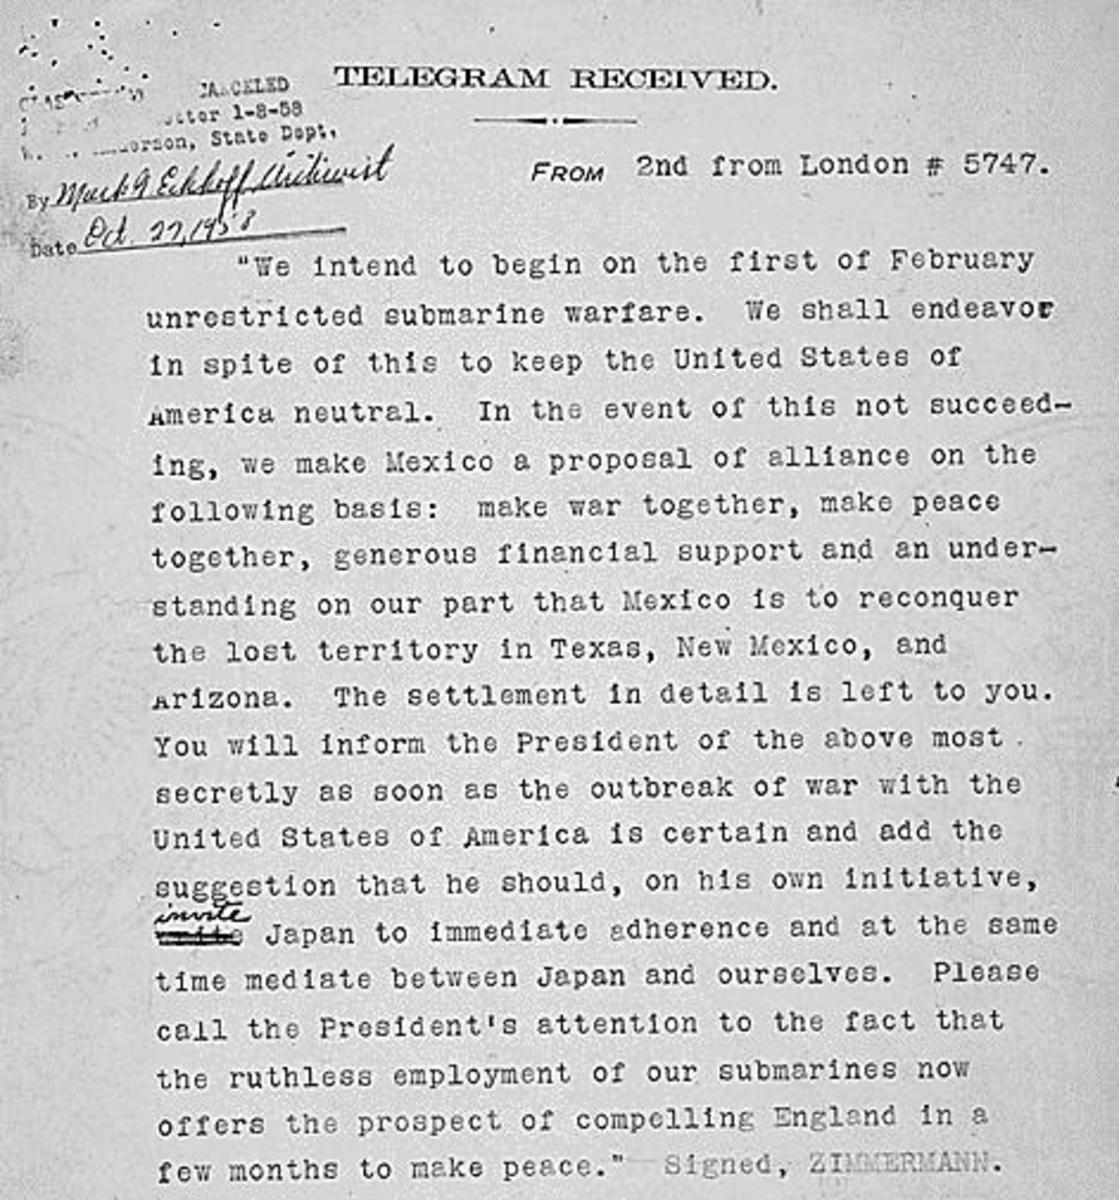 Copy of Zimmerman Telegram after it had been decoded. (Courtesy of U.S. National Archives)